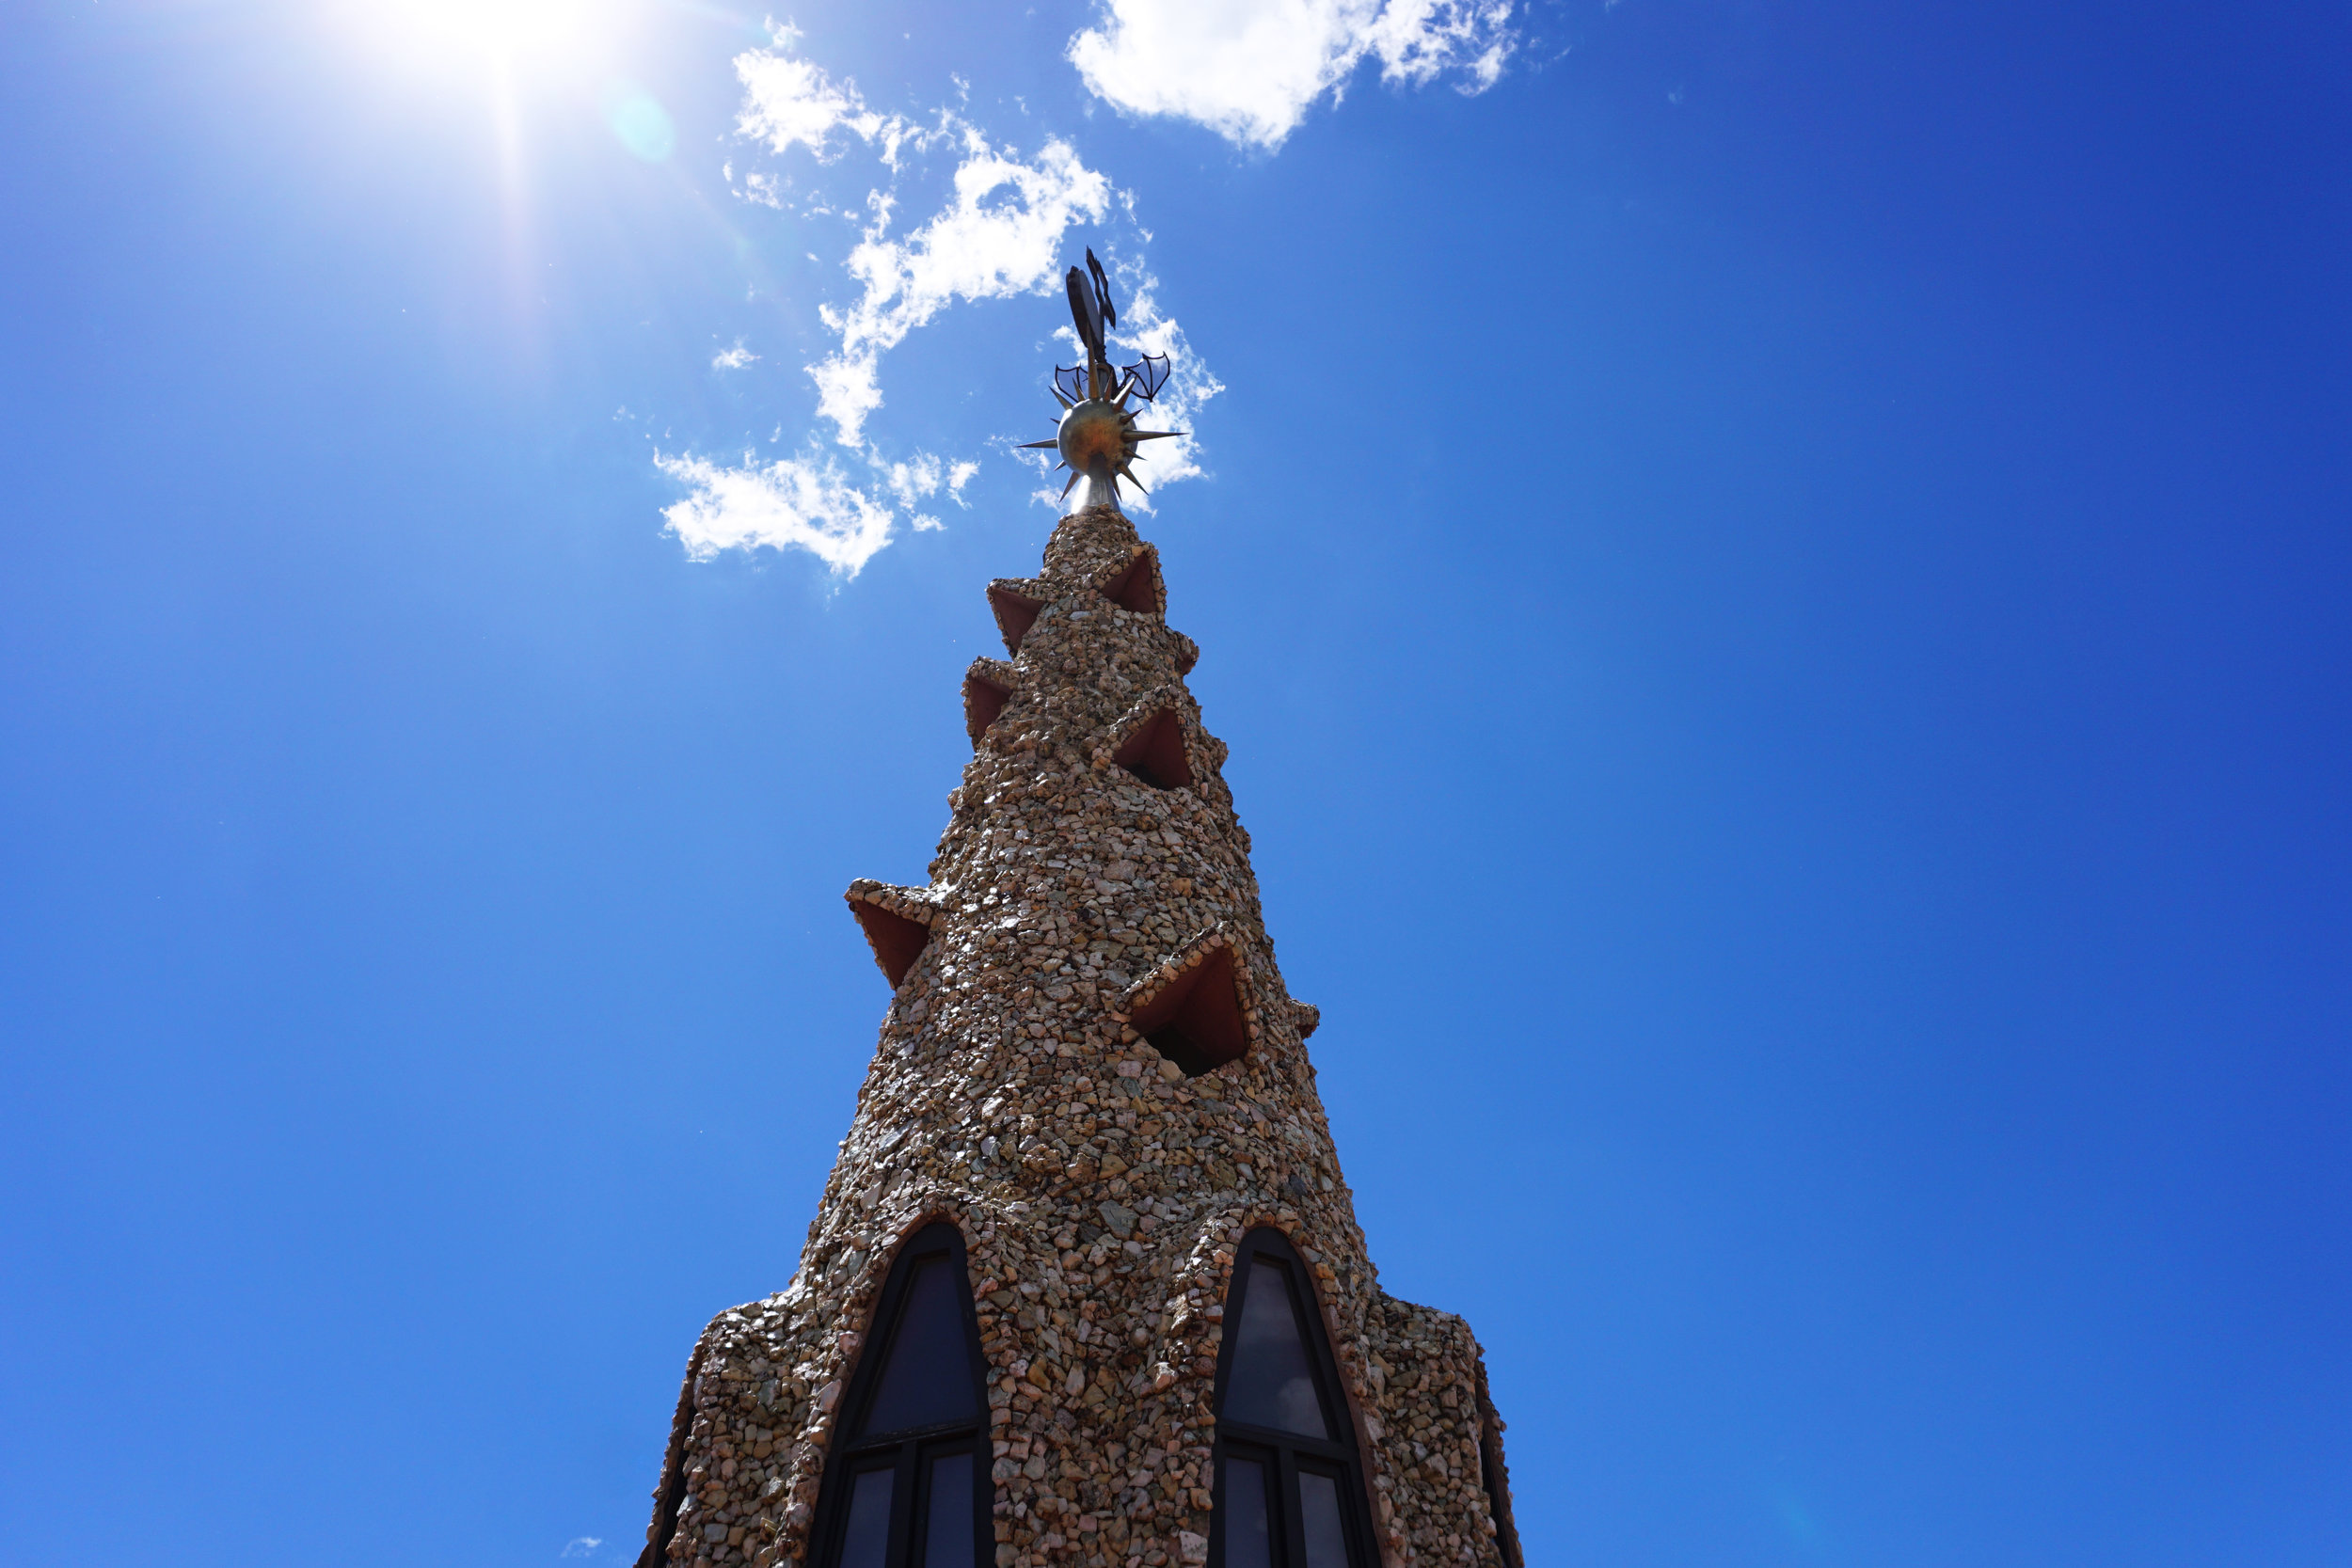 Gaudi designed  Palau Güell  for Eusebi Güell and is now a UNESCO World Heritage Site. If you appreciate Gaudi's work, then Palau Güell shouldn't be missed - it's less frequented by tourists and provides a cooler refuge since everything is indoors.